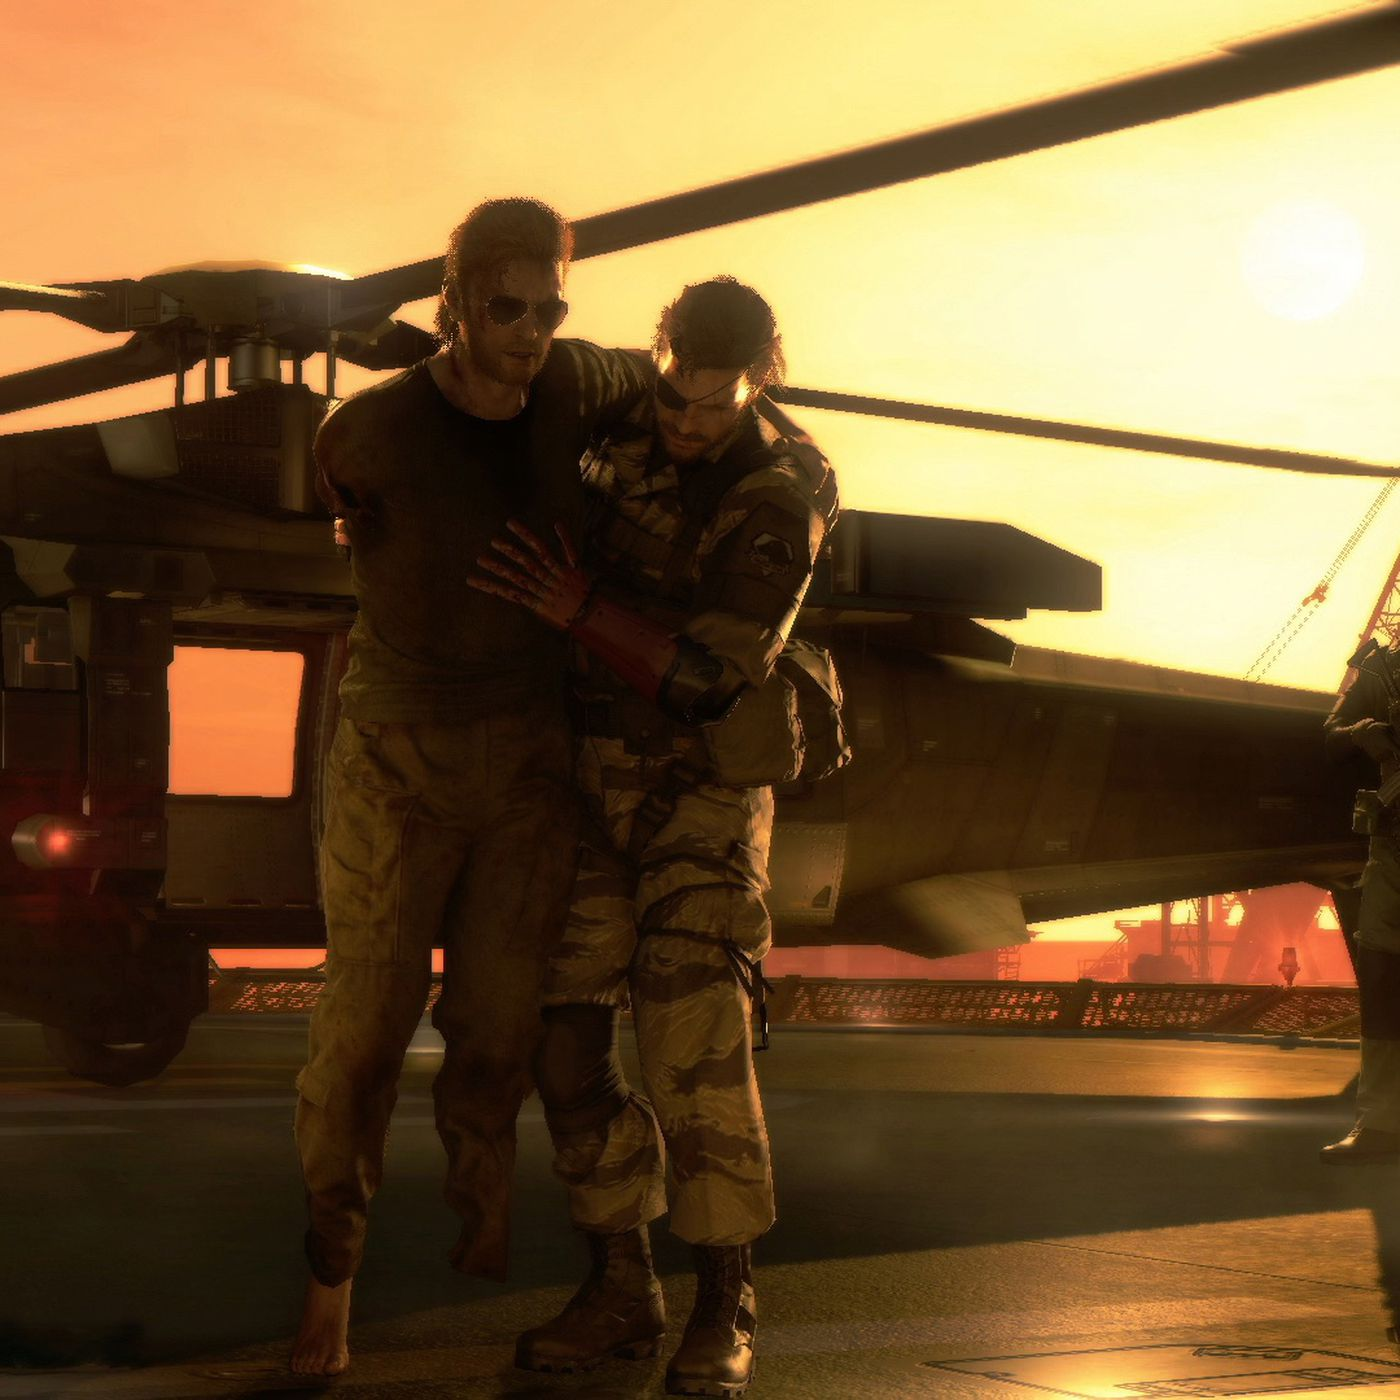 Konami says MGS5's ending isn't missing, so everyone can